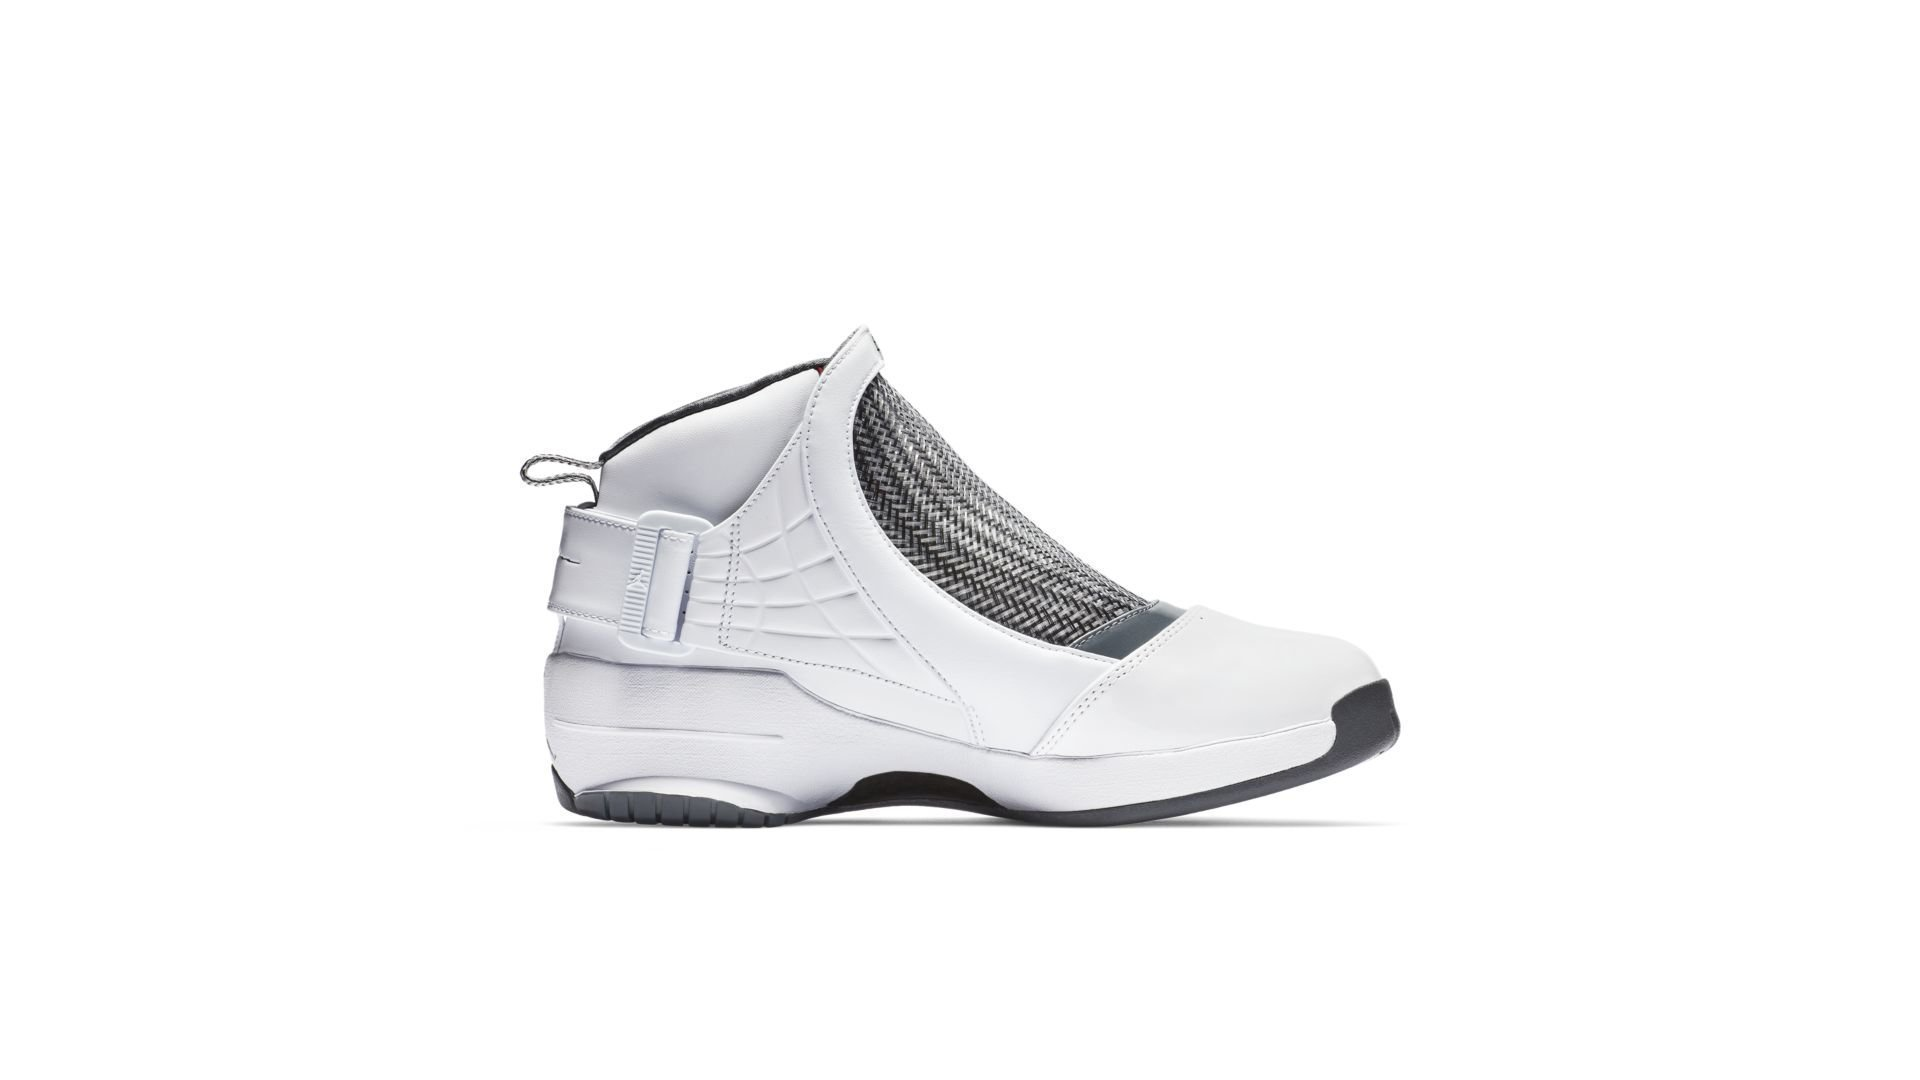 Jordan 19 Retro White Flint Grey (AQ9213-100)